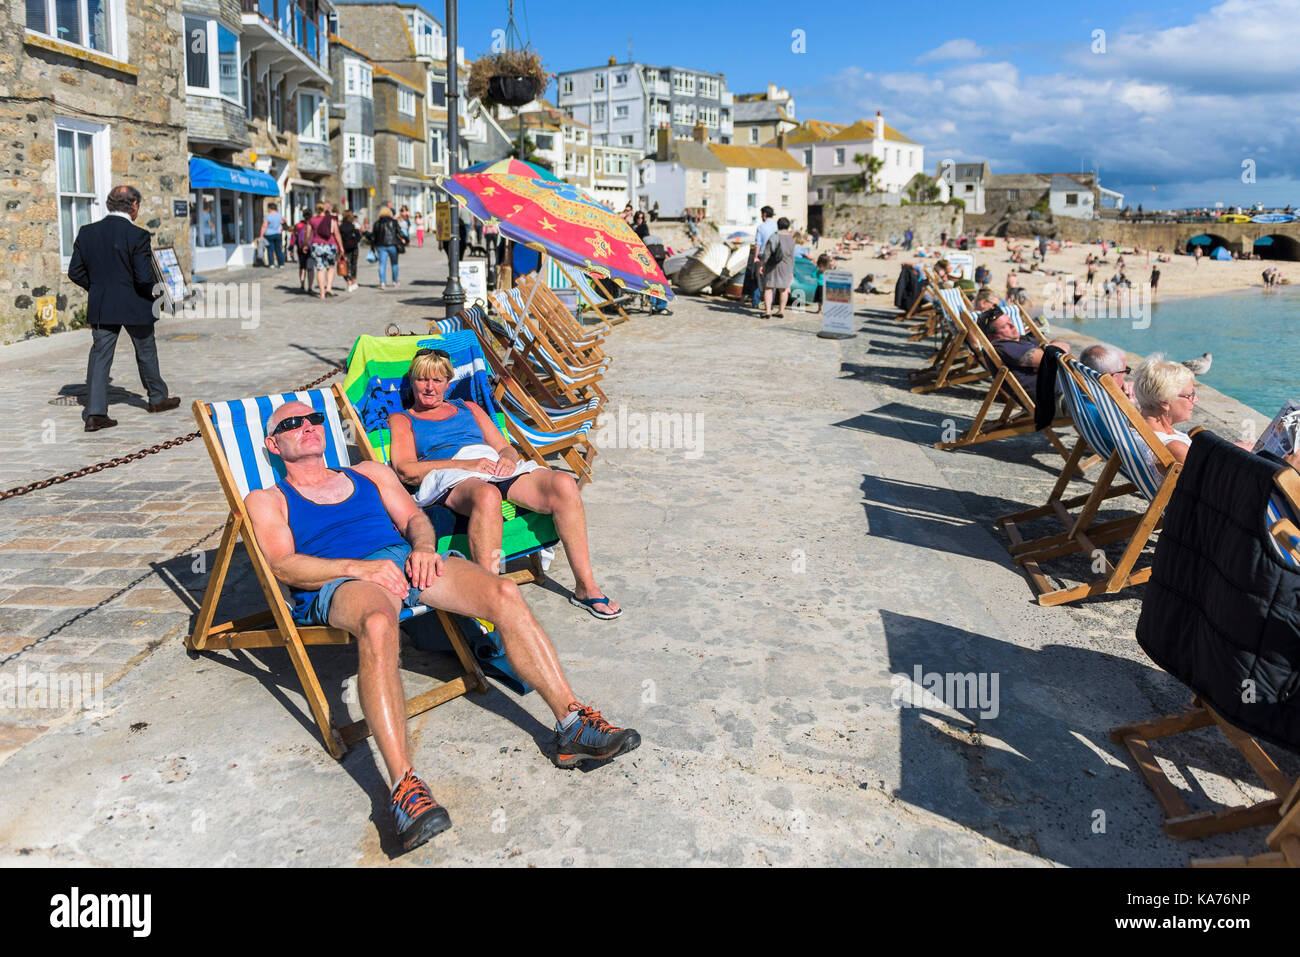 St Ives - holidaymakers relaxing in deckchairs on the quay at St Ives Harbour Beach Cornwall. - Stock Image